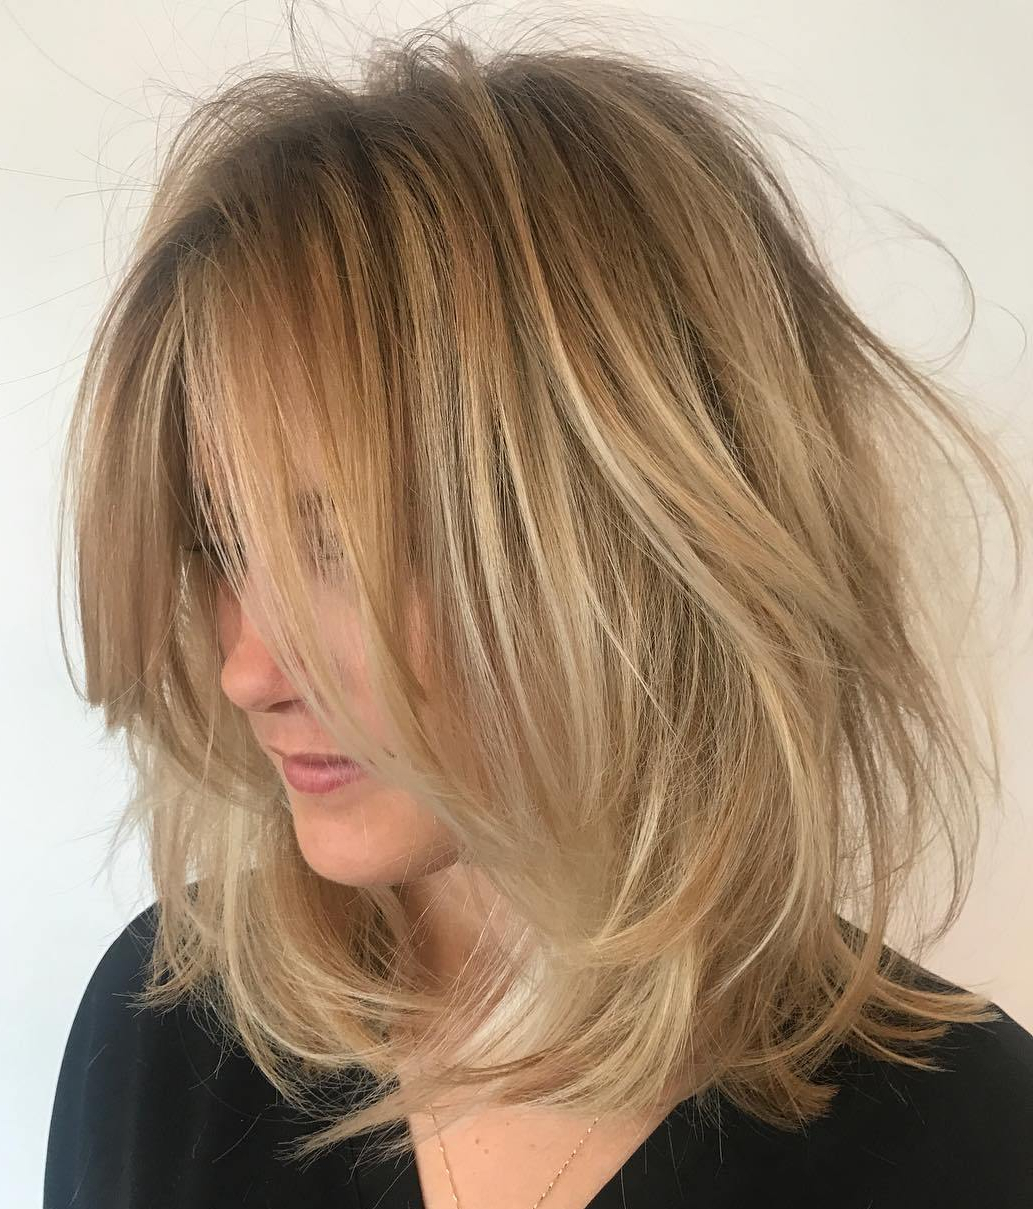 70 Devastatingly Cool Haircuts For Thin Hair Inside Most Recent Long Tousled Voluminous Hairstyles (View 5 of 20)